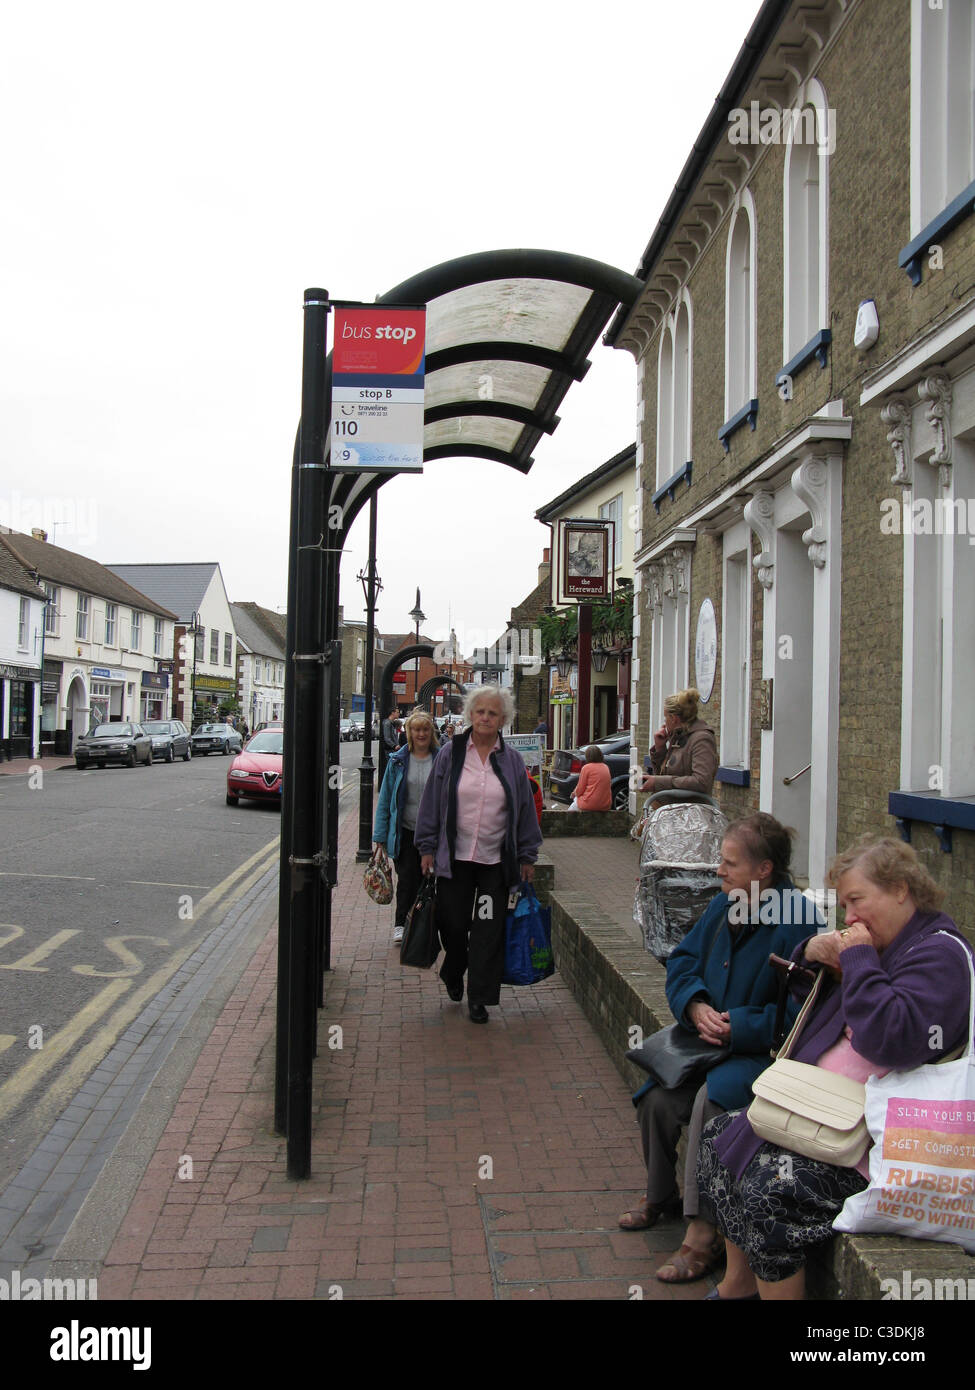 People waiting for bus in Ely - Stock Image